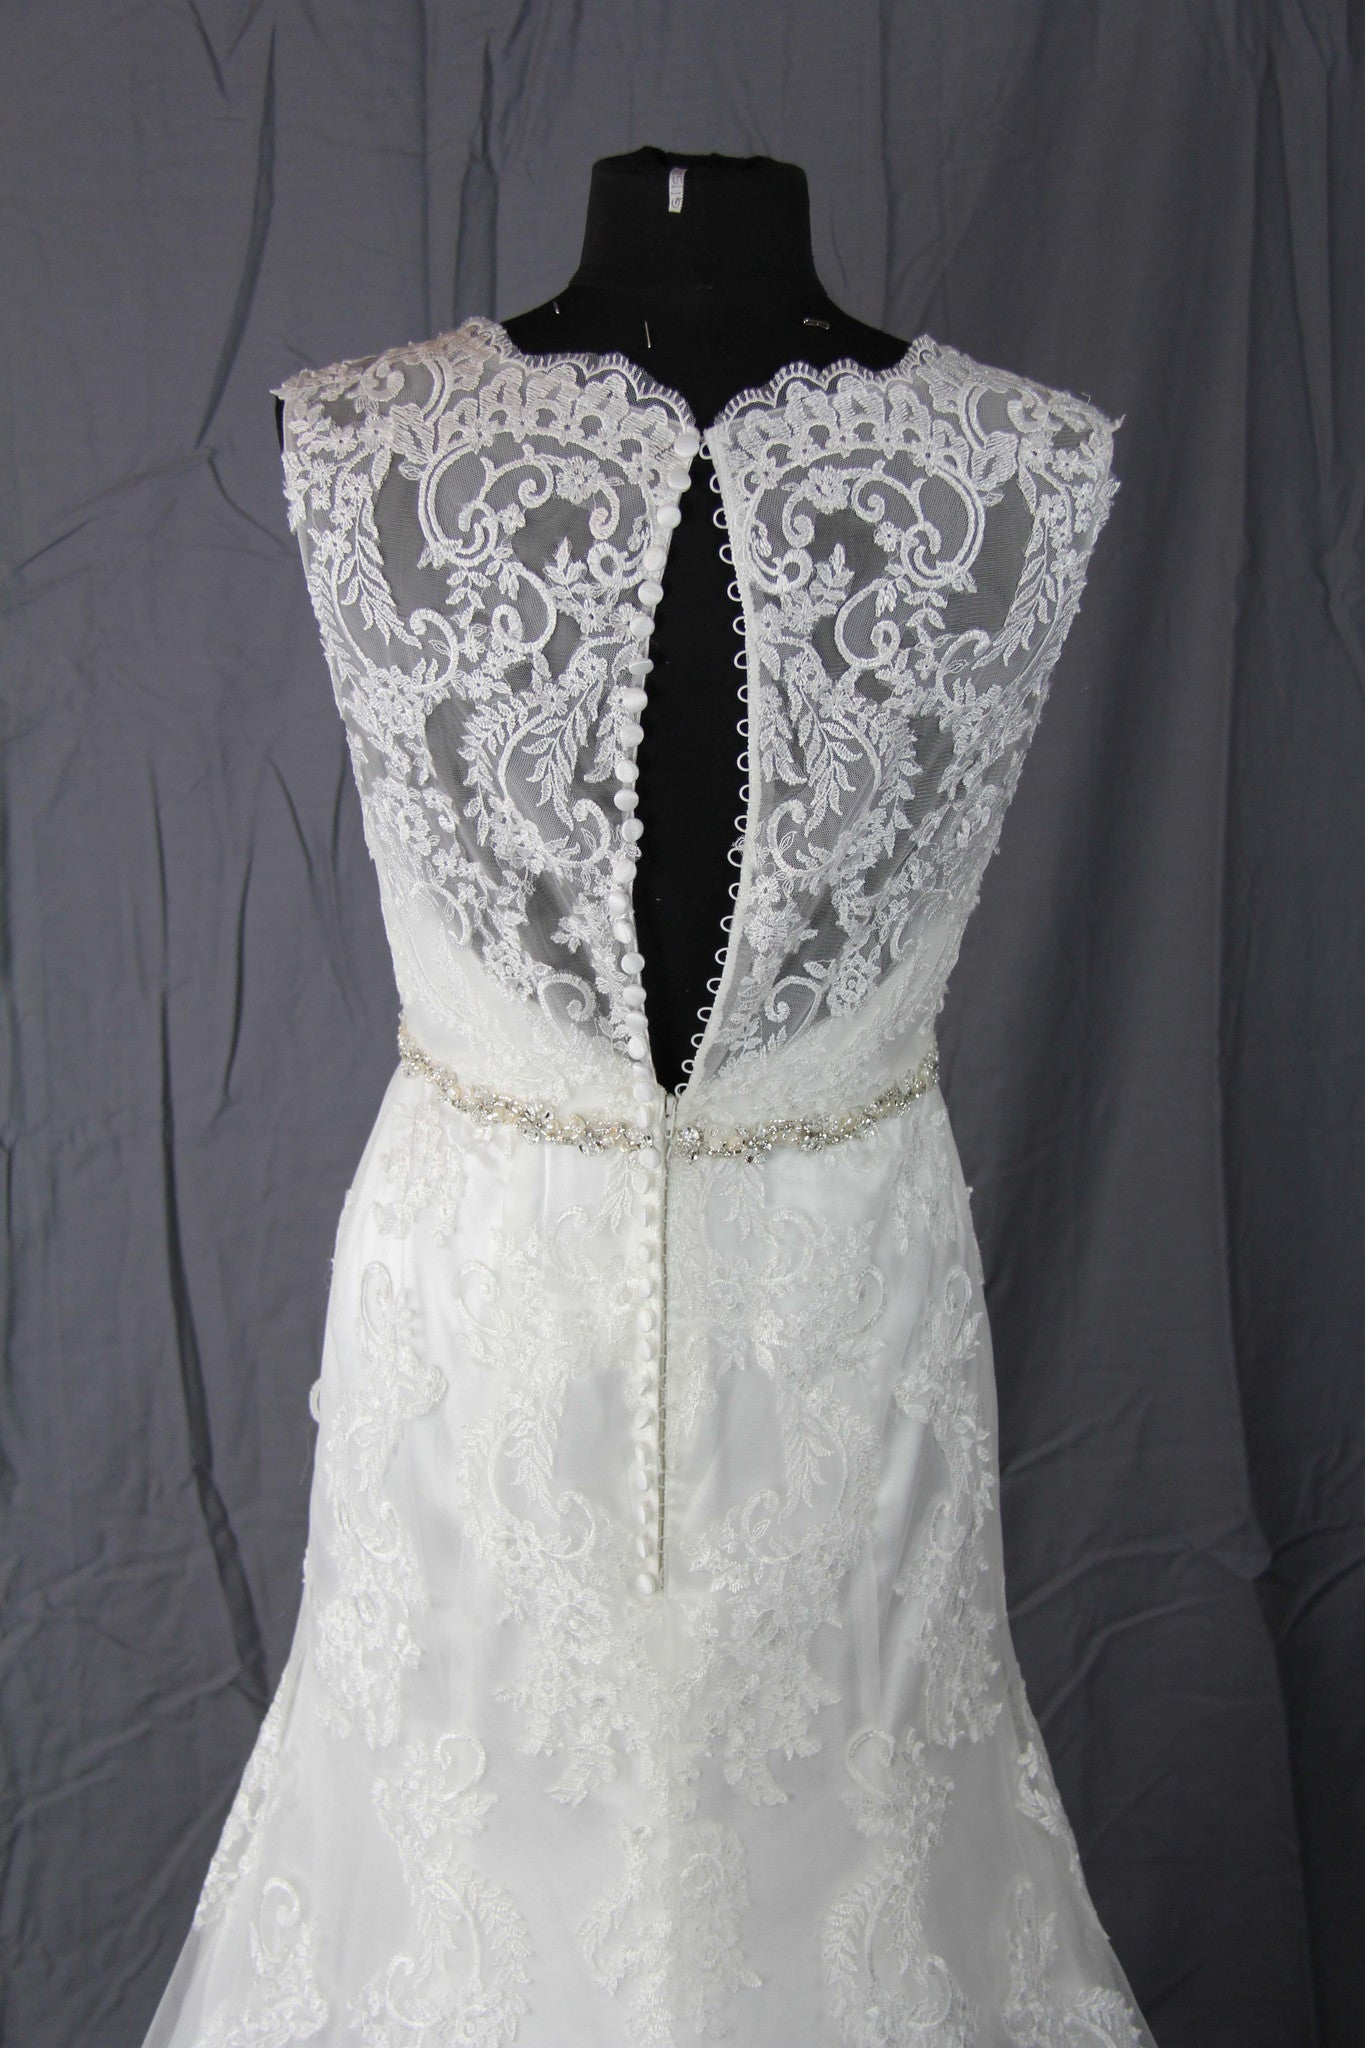 Jacquelin Exclusive - 19972 Ivory Sample Gown - Adinas Bridal